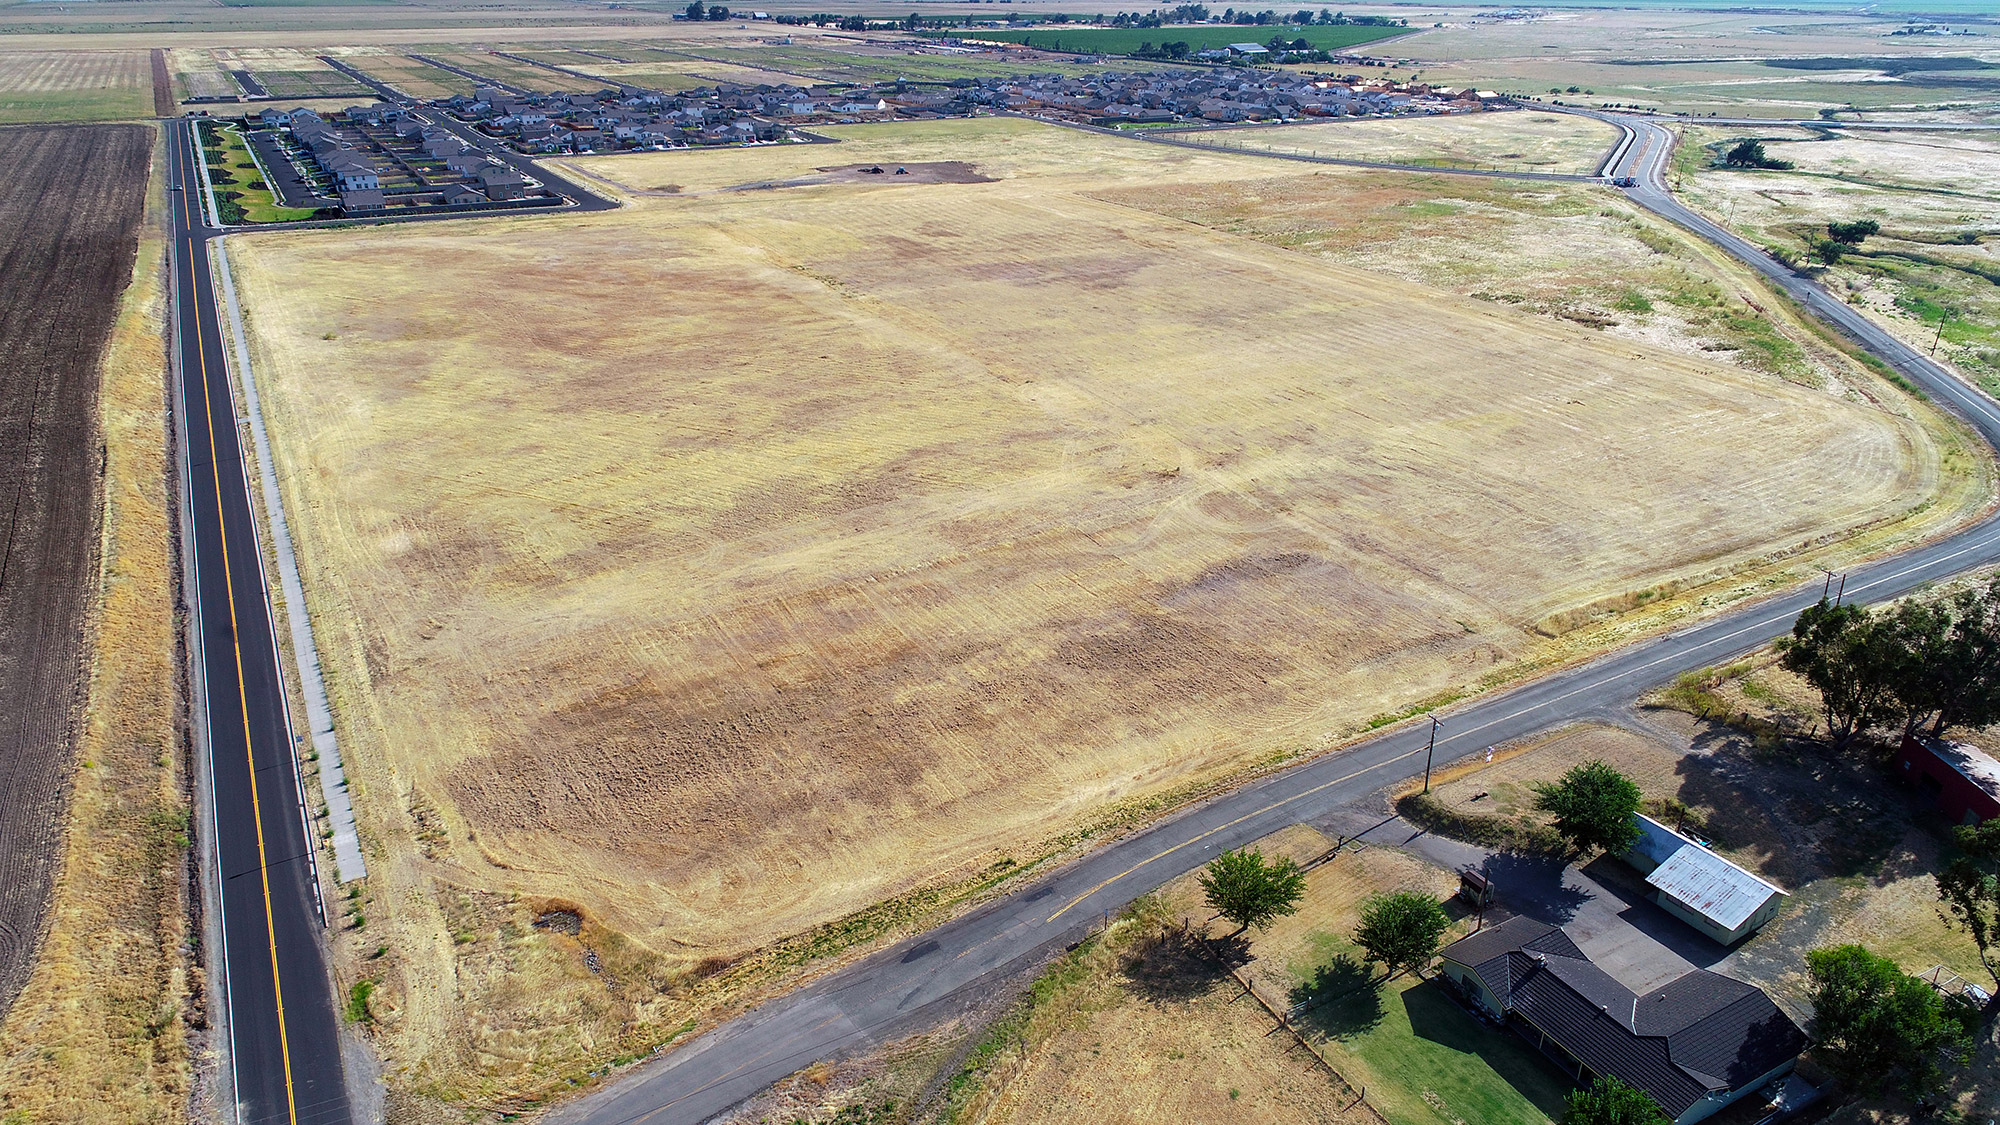 wide aerial view of a raw plot of land and a finished portion of the development in view behind it